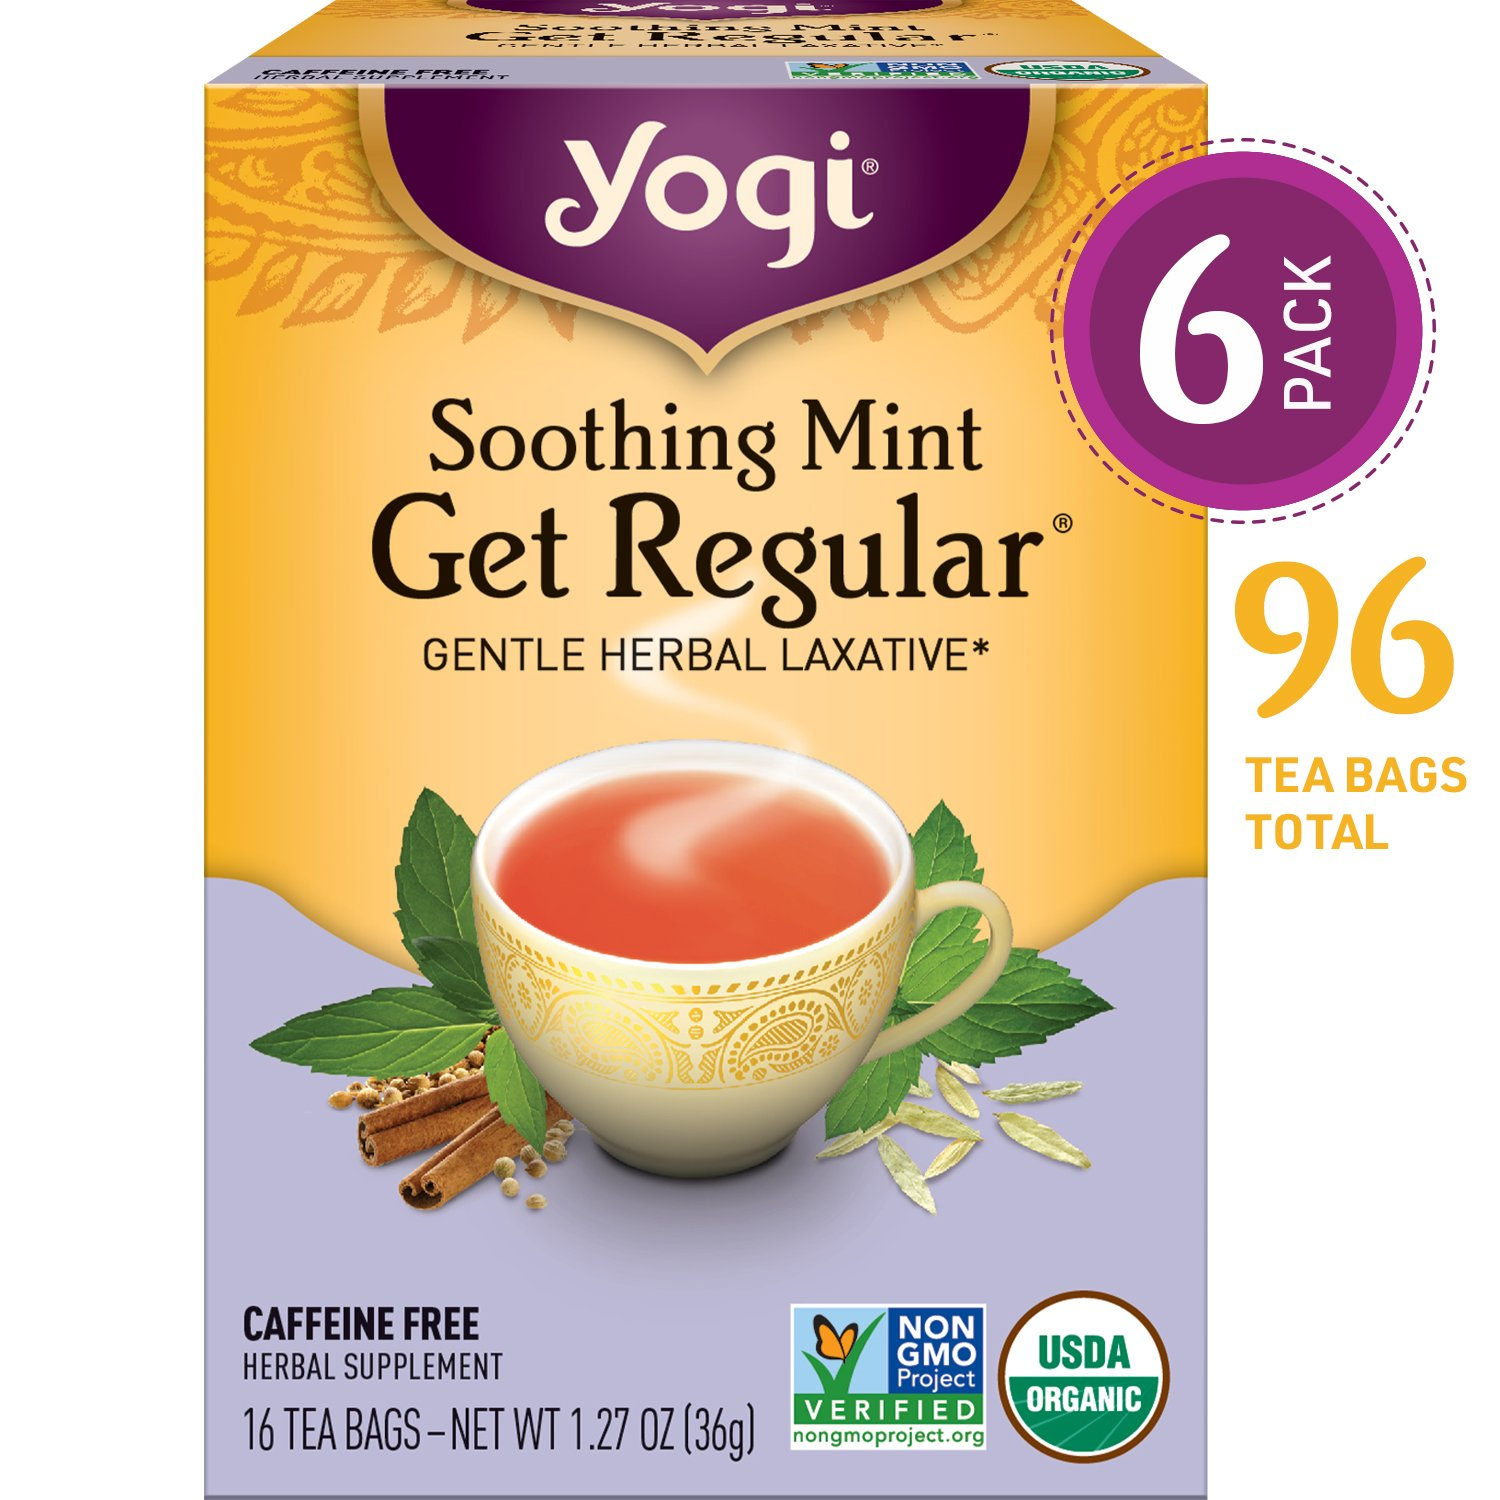 Yogi Tea - Soothing Mint Get Regular - Gentle Herbal Laxative - 6 Pack, 96 Tea Bags Total by Yogi